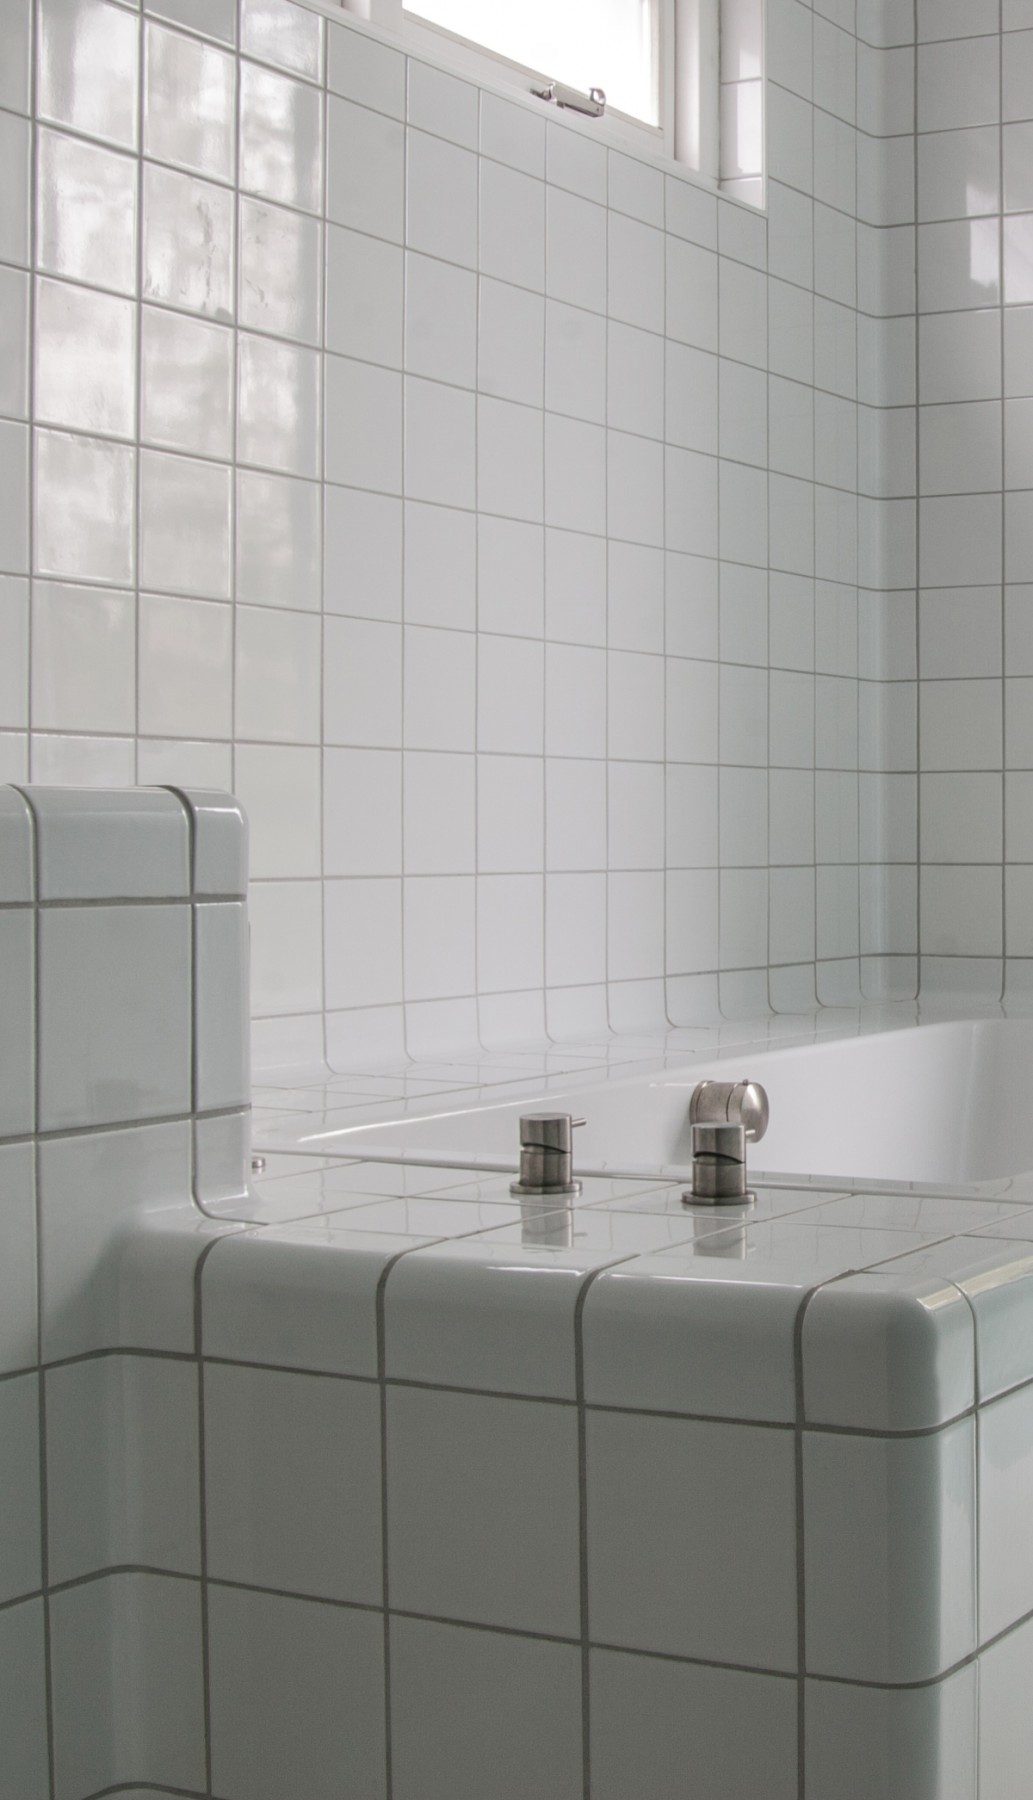 three-dimensional tiles bathtub, modern rounded construction and functional tiles in multiple colors